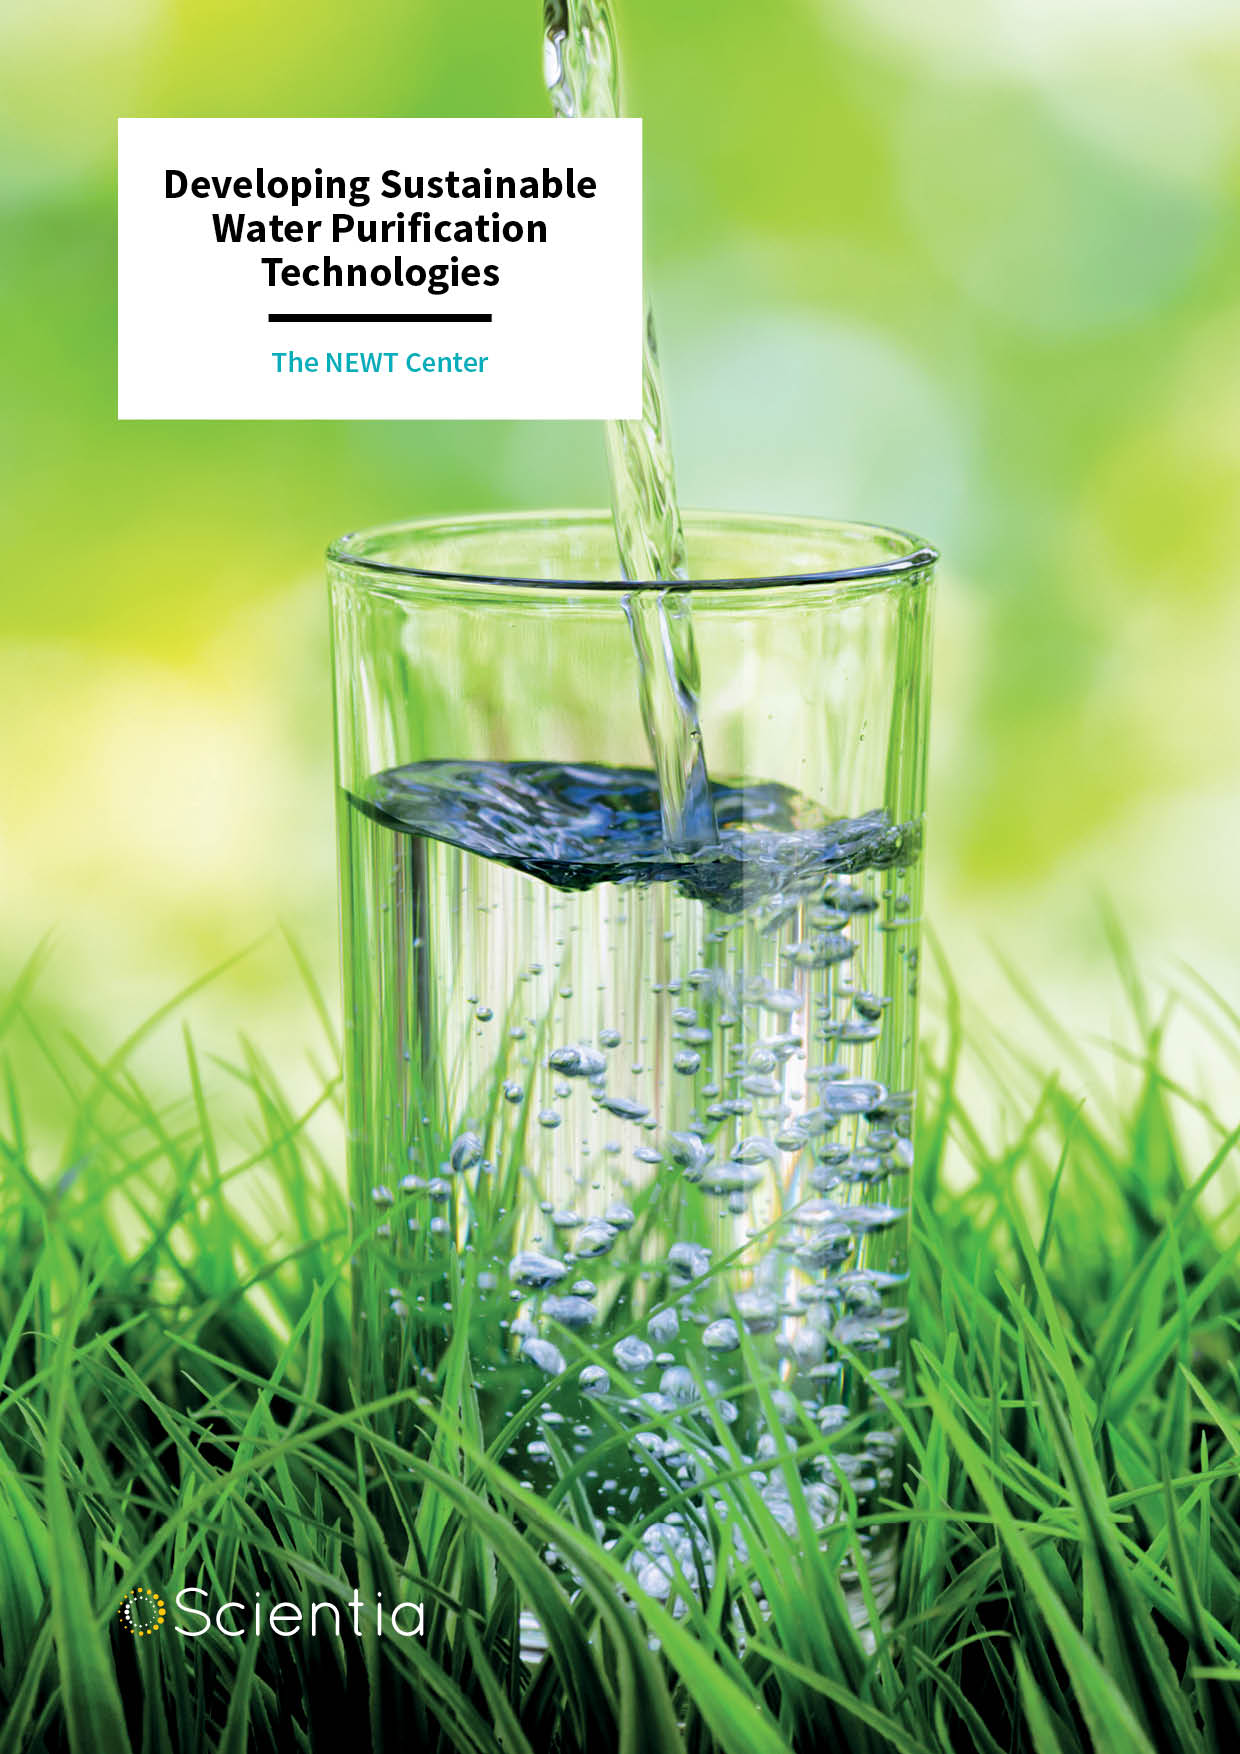 Developing Sustainable Water Purification Technologies